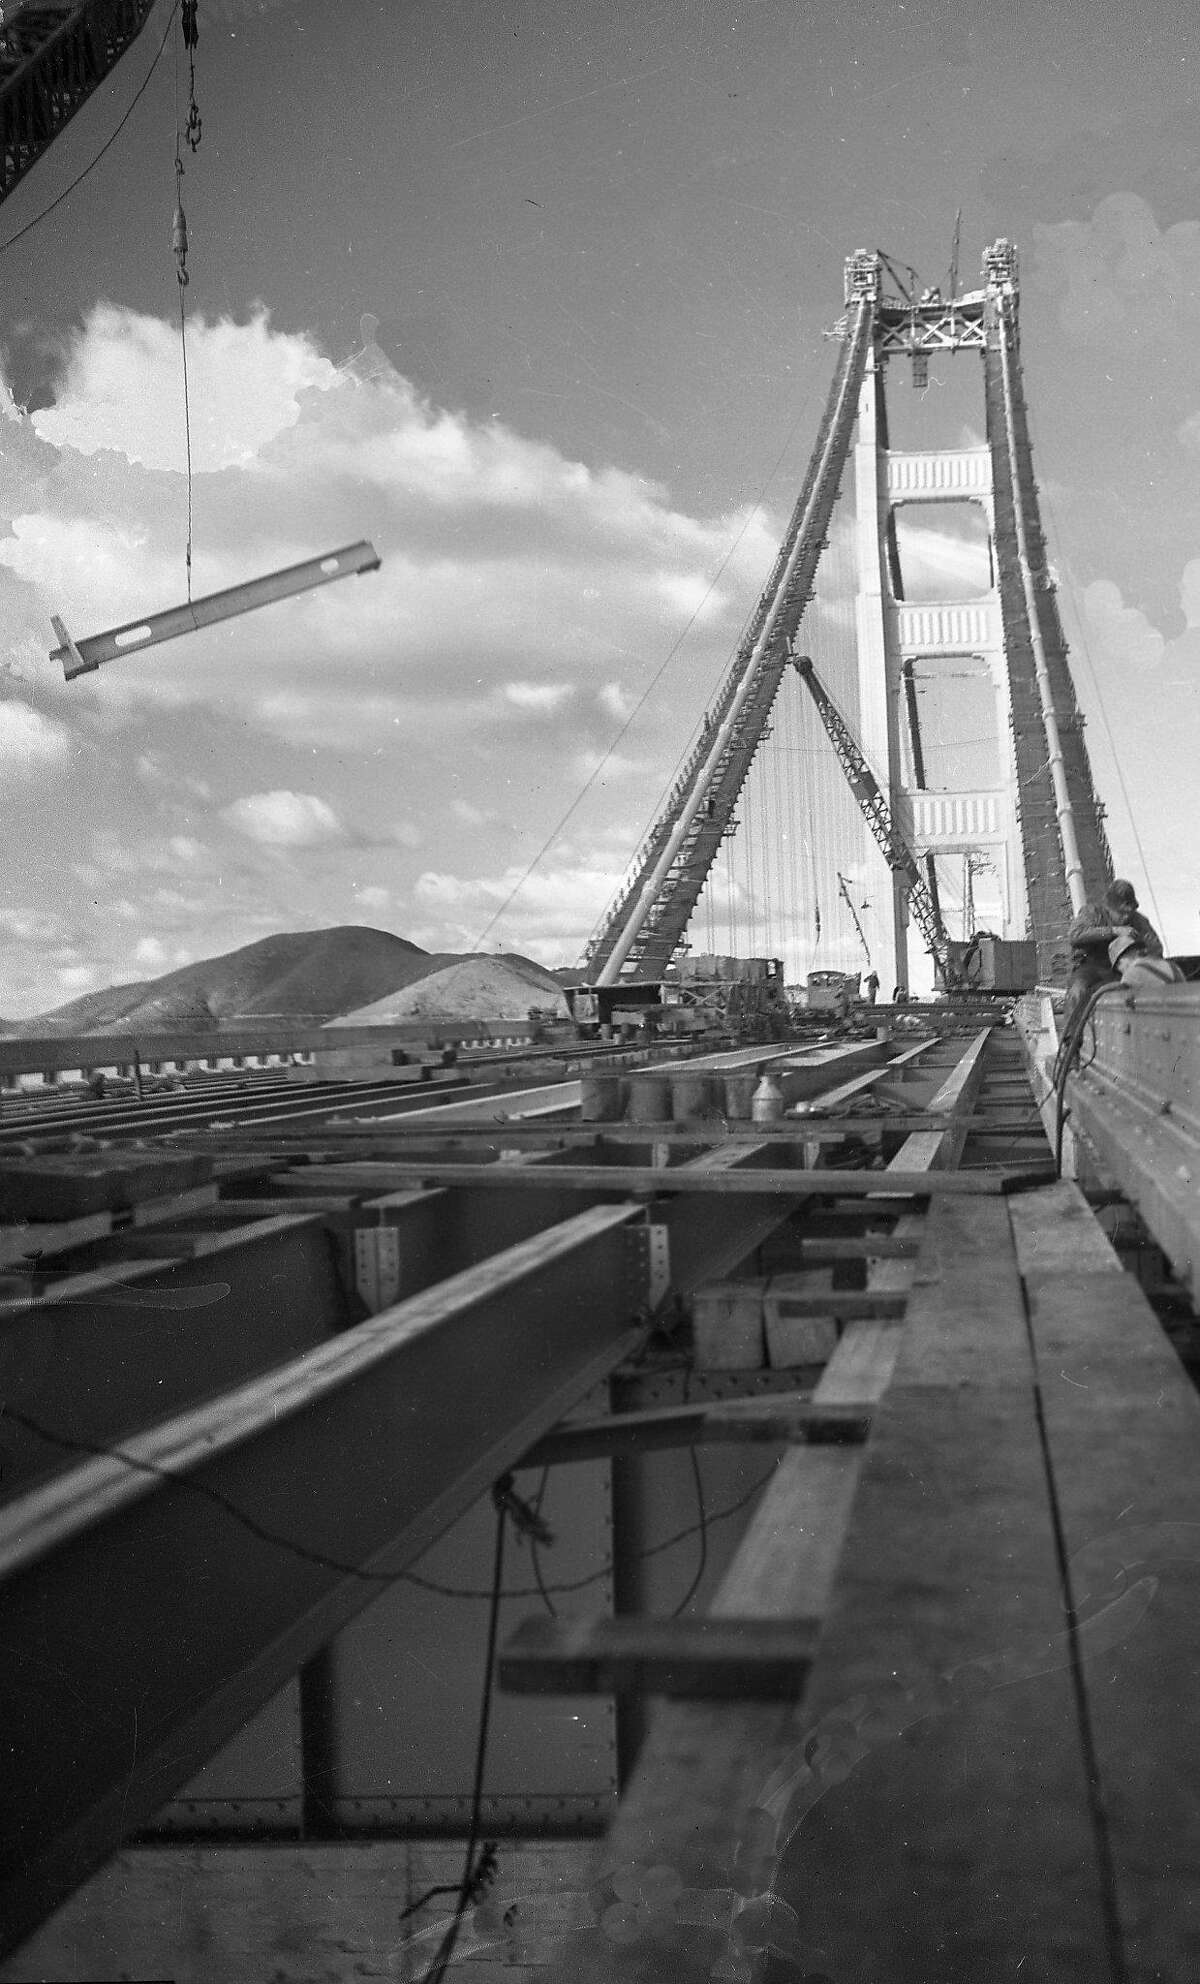 golden Gate bridge construction photos from the box of negatives. I believe never scanned before. This negative is dated November 5,1936